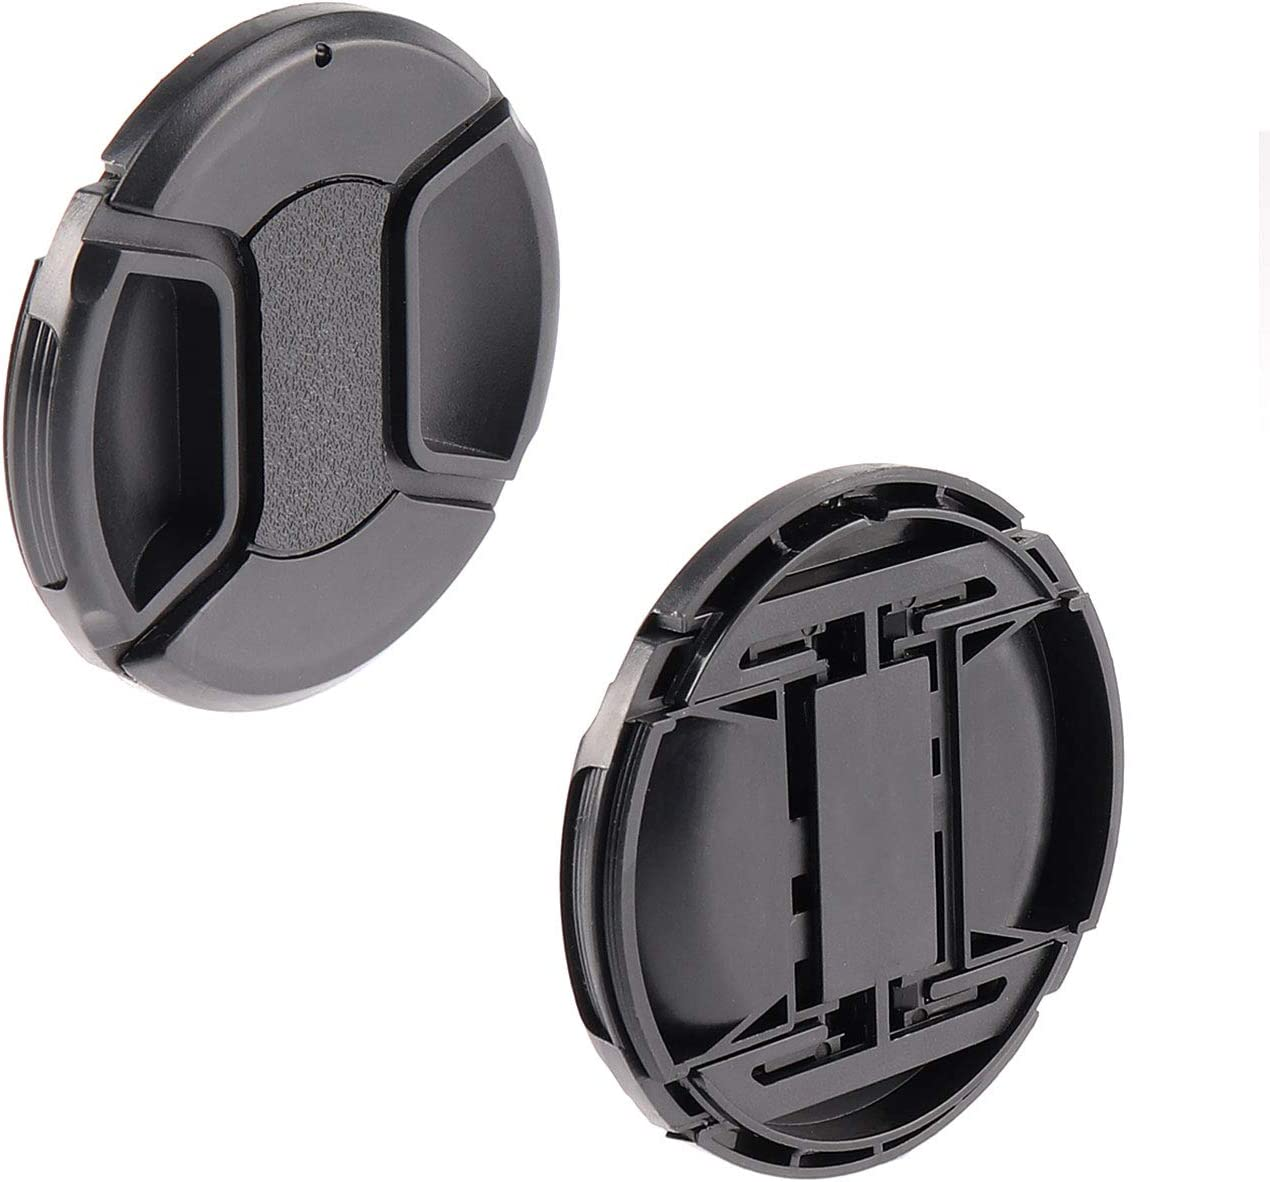 Foto4easy 82mm Center Portland Mall Pinch Front Lens Cap Canon Nikon Sony Ranking TOP17 for